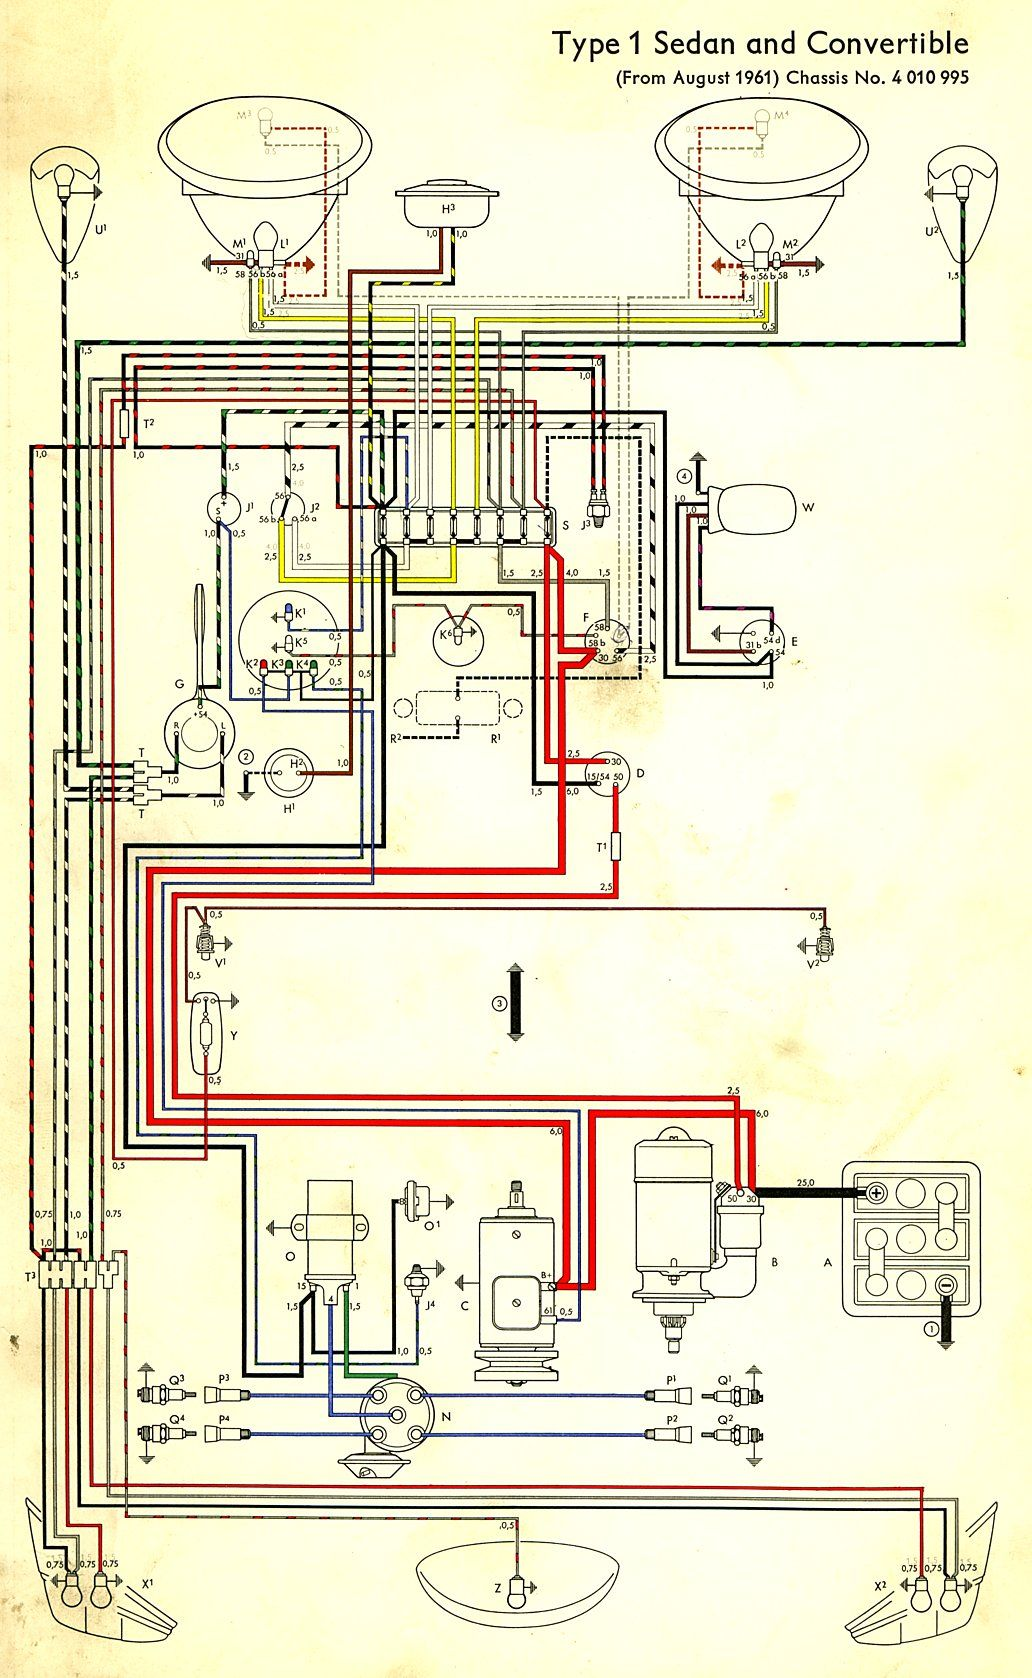 1966 vw beetle wiring harness wiring diagram inside 1974 vw bug wiring 1966 vw bug wiring [ 1032 x 1678 Pixel ]